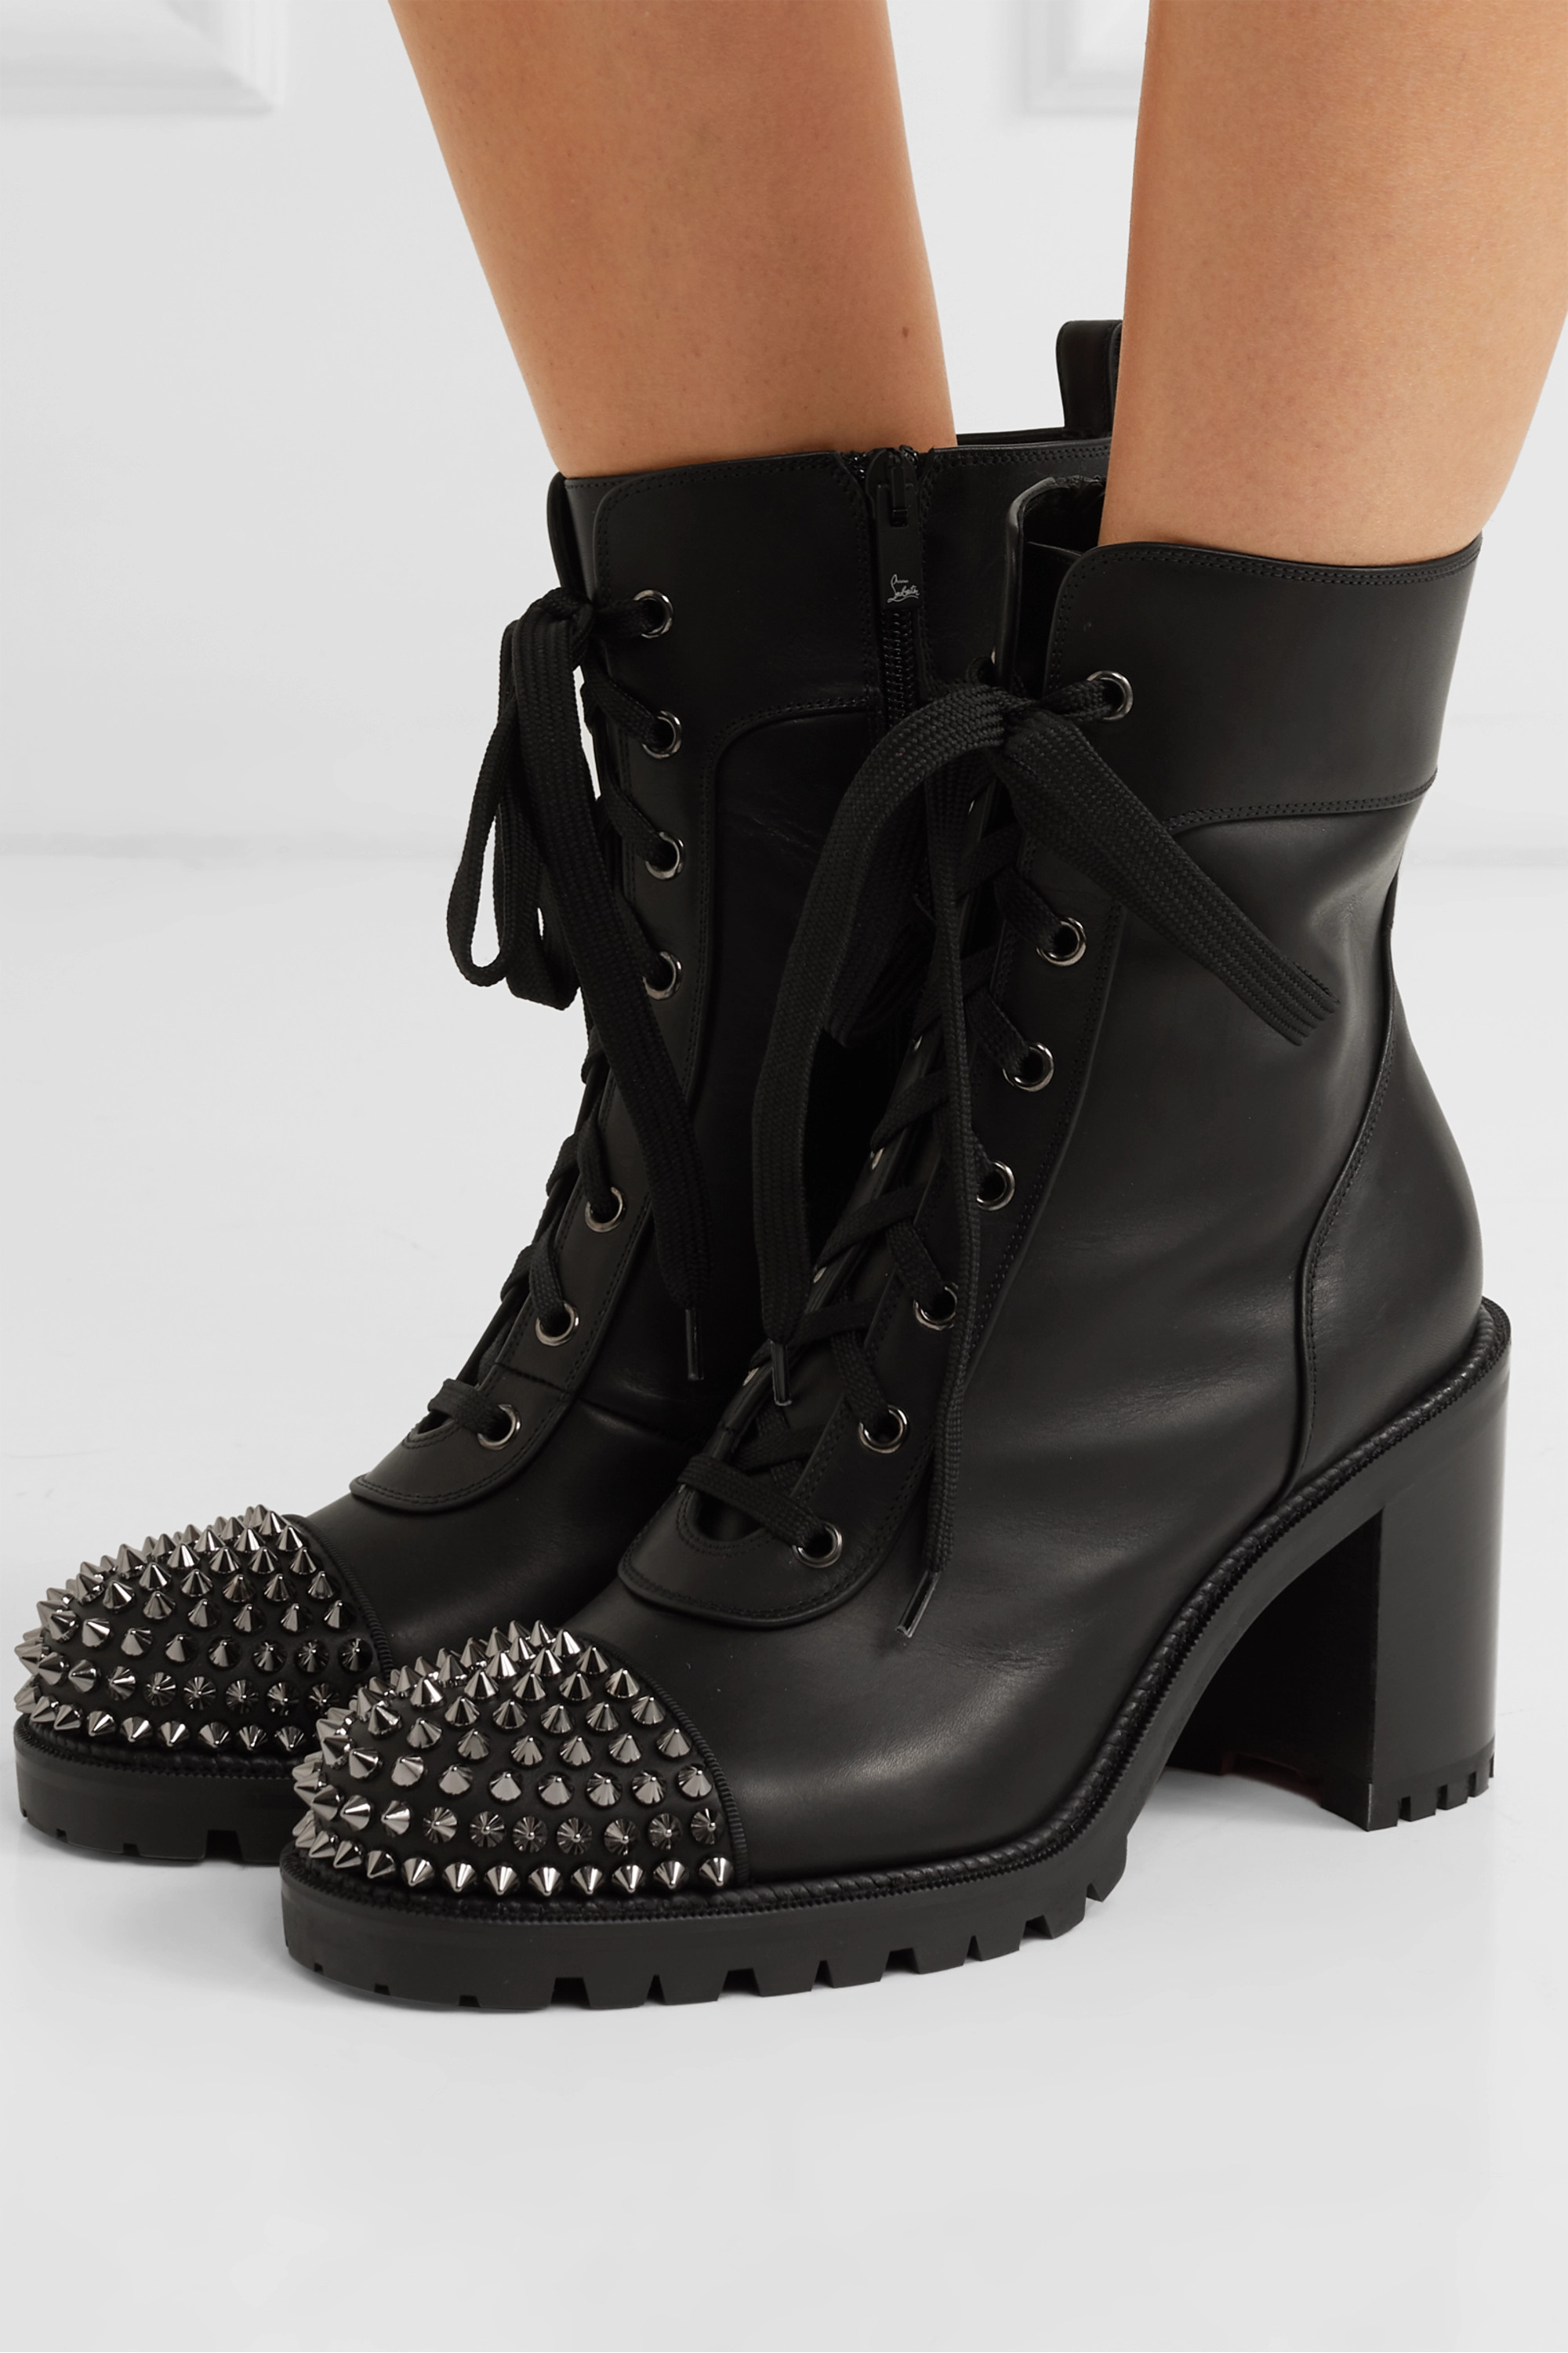 Black TS Croc 70 spiked leather ankle